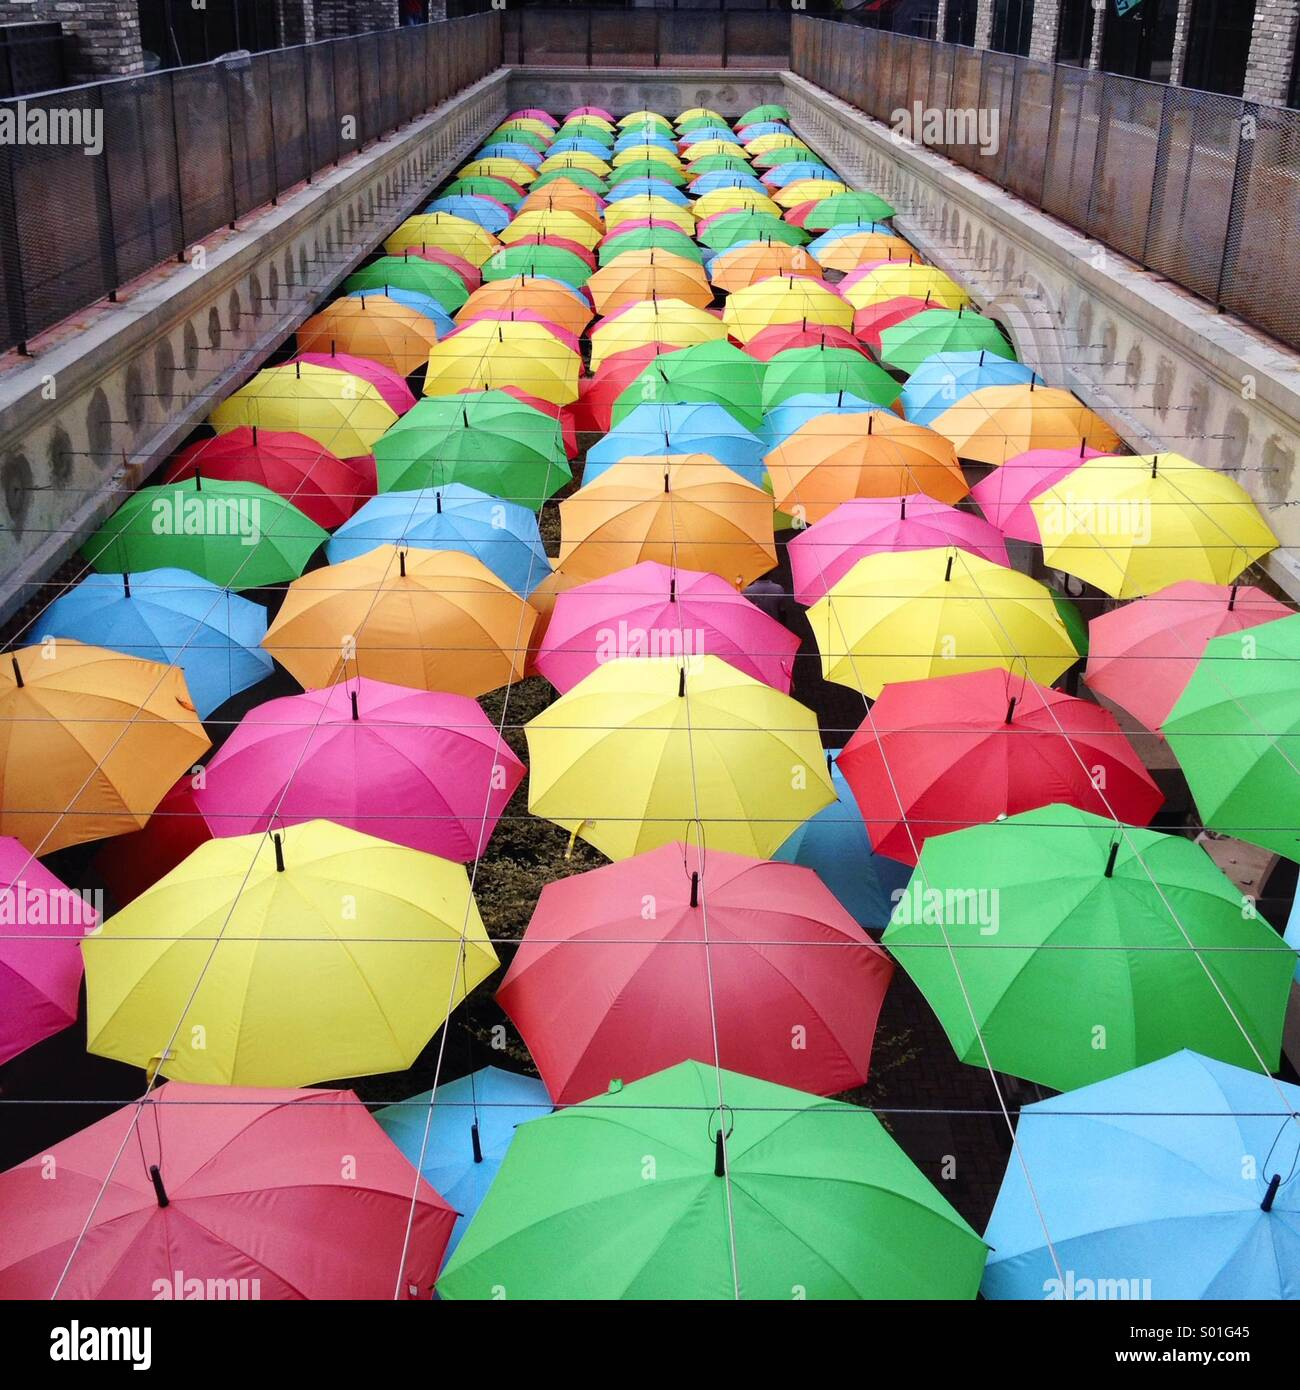 Decoration of umbrellas - Stock Image